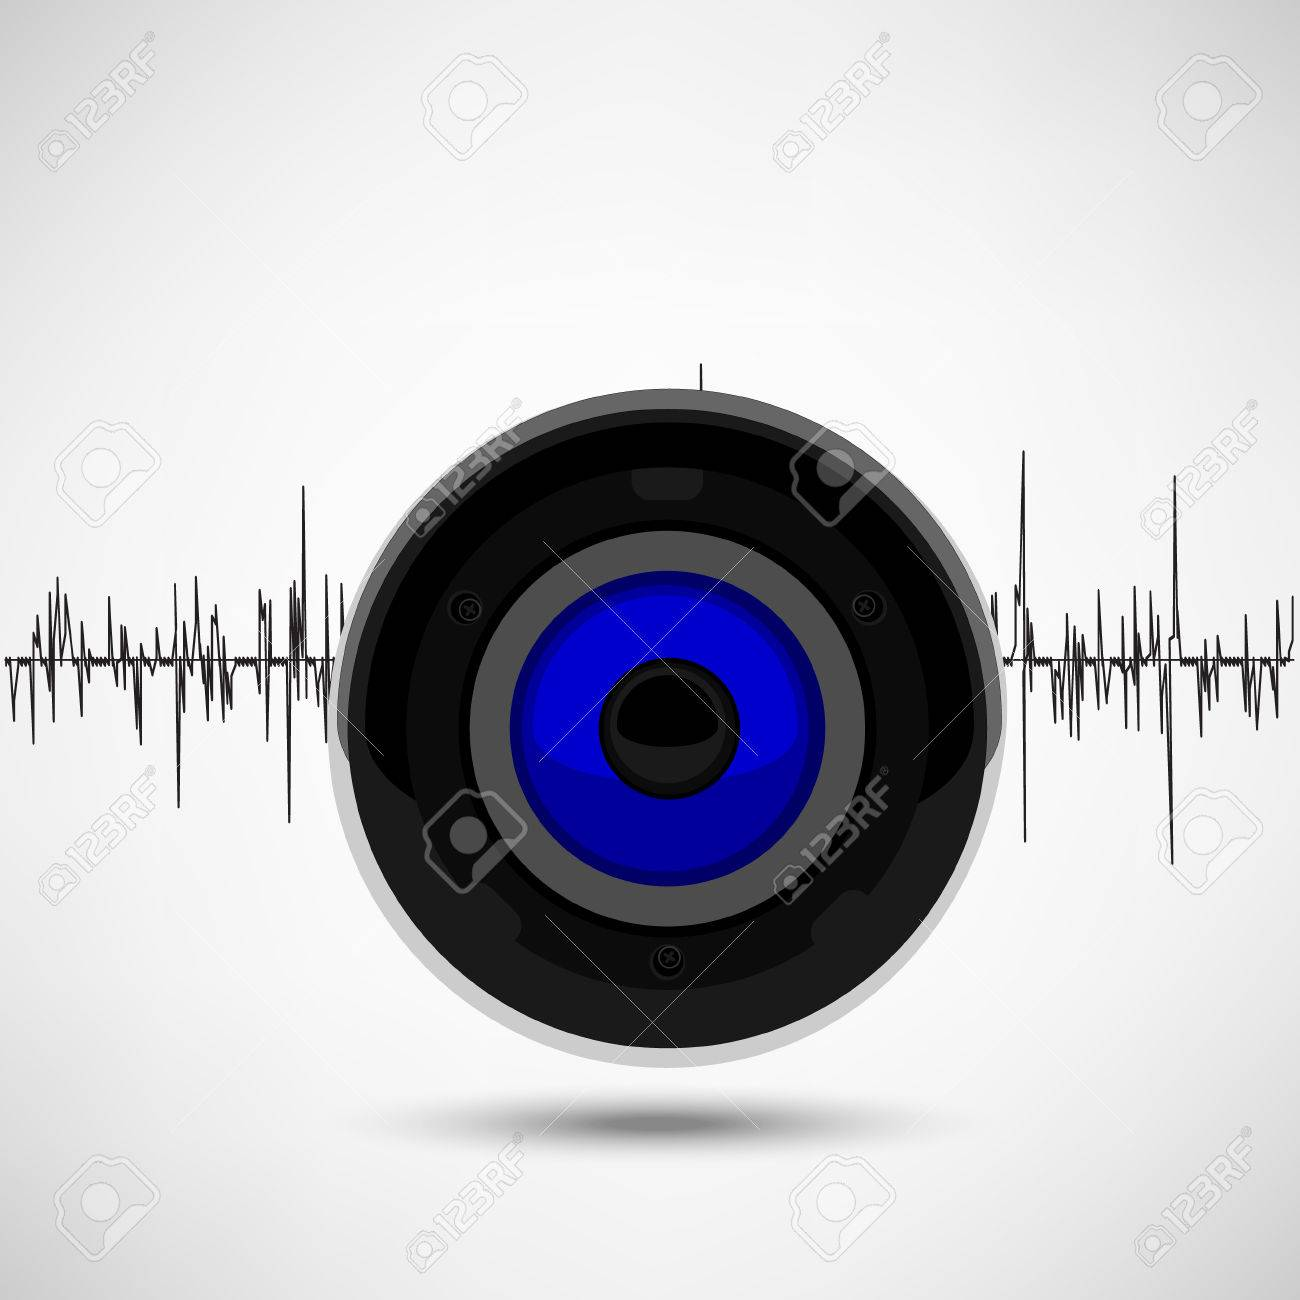 Top Wallpaper Music Soundwave - 77535754-raster-illustration-music-wallpaper-background-poster-with-sound-wave-and-speaker-for-radio-club-or-  You Should Have_151356.jpg